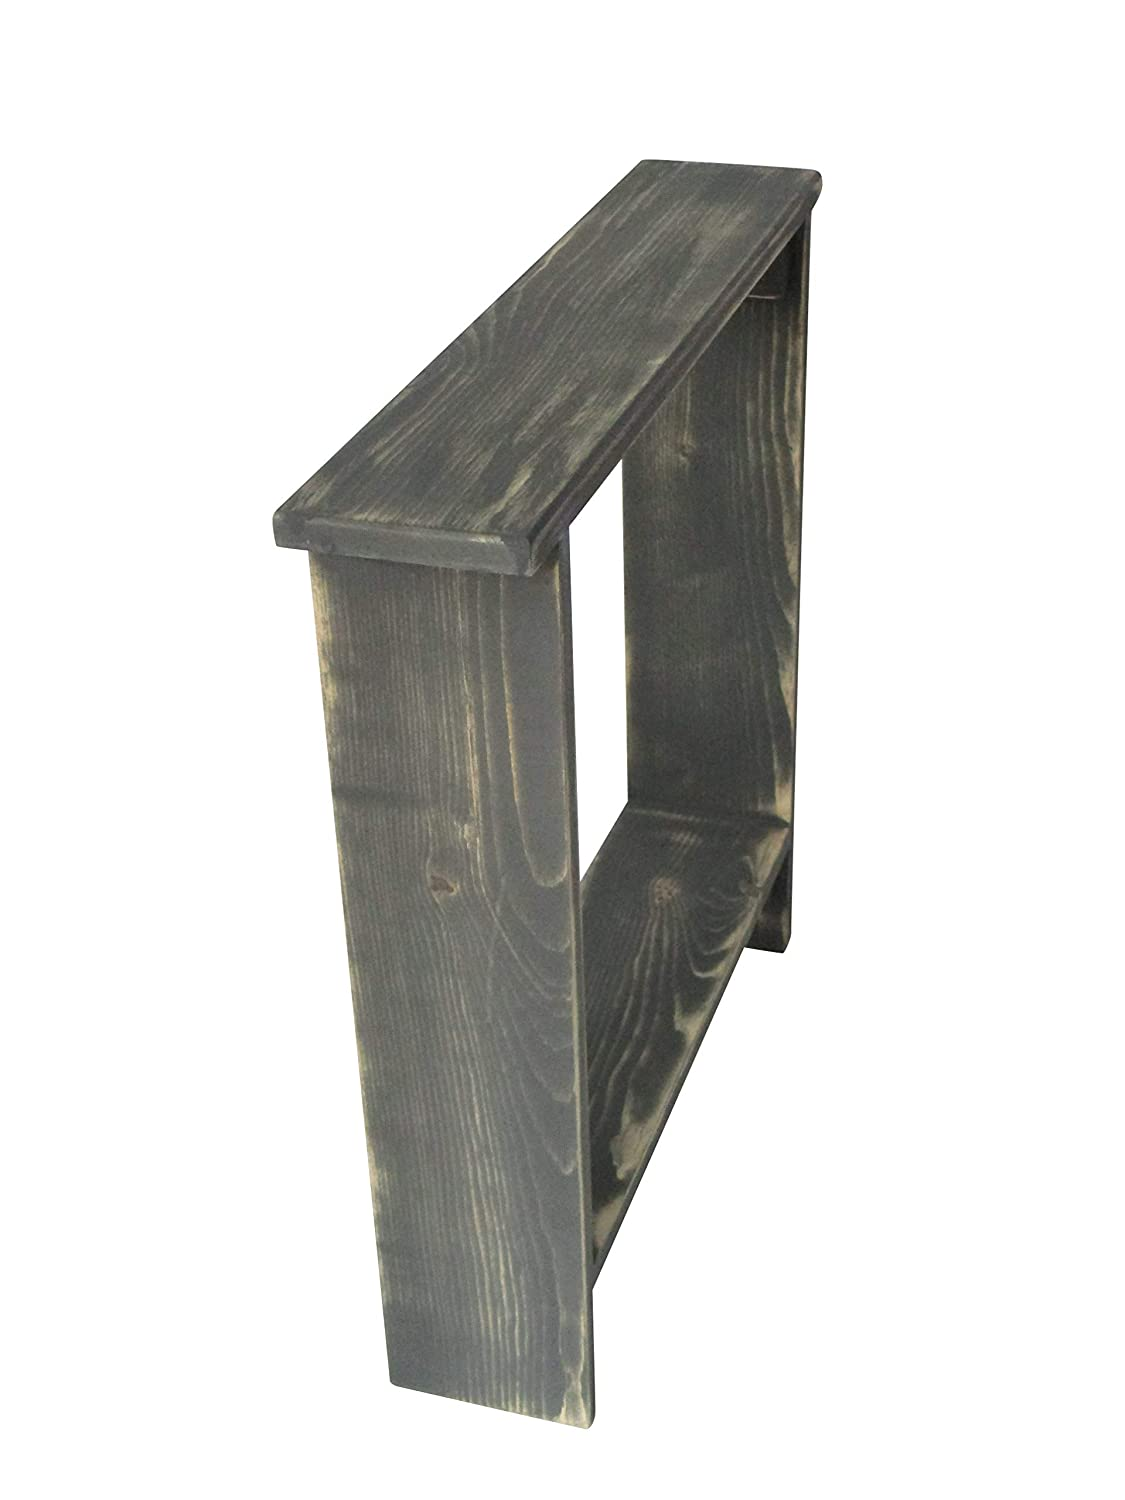 Small accent table skinny side table entryway table entry table rustic wood